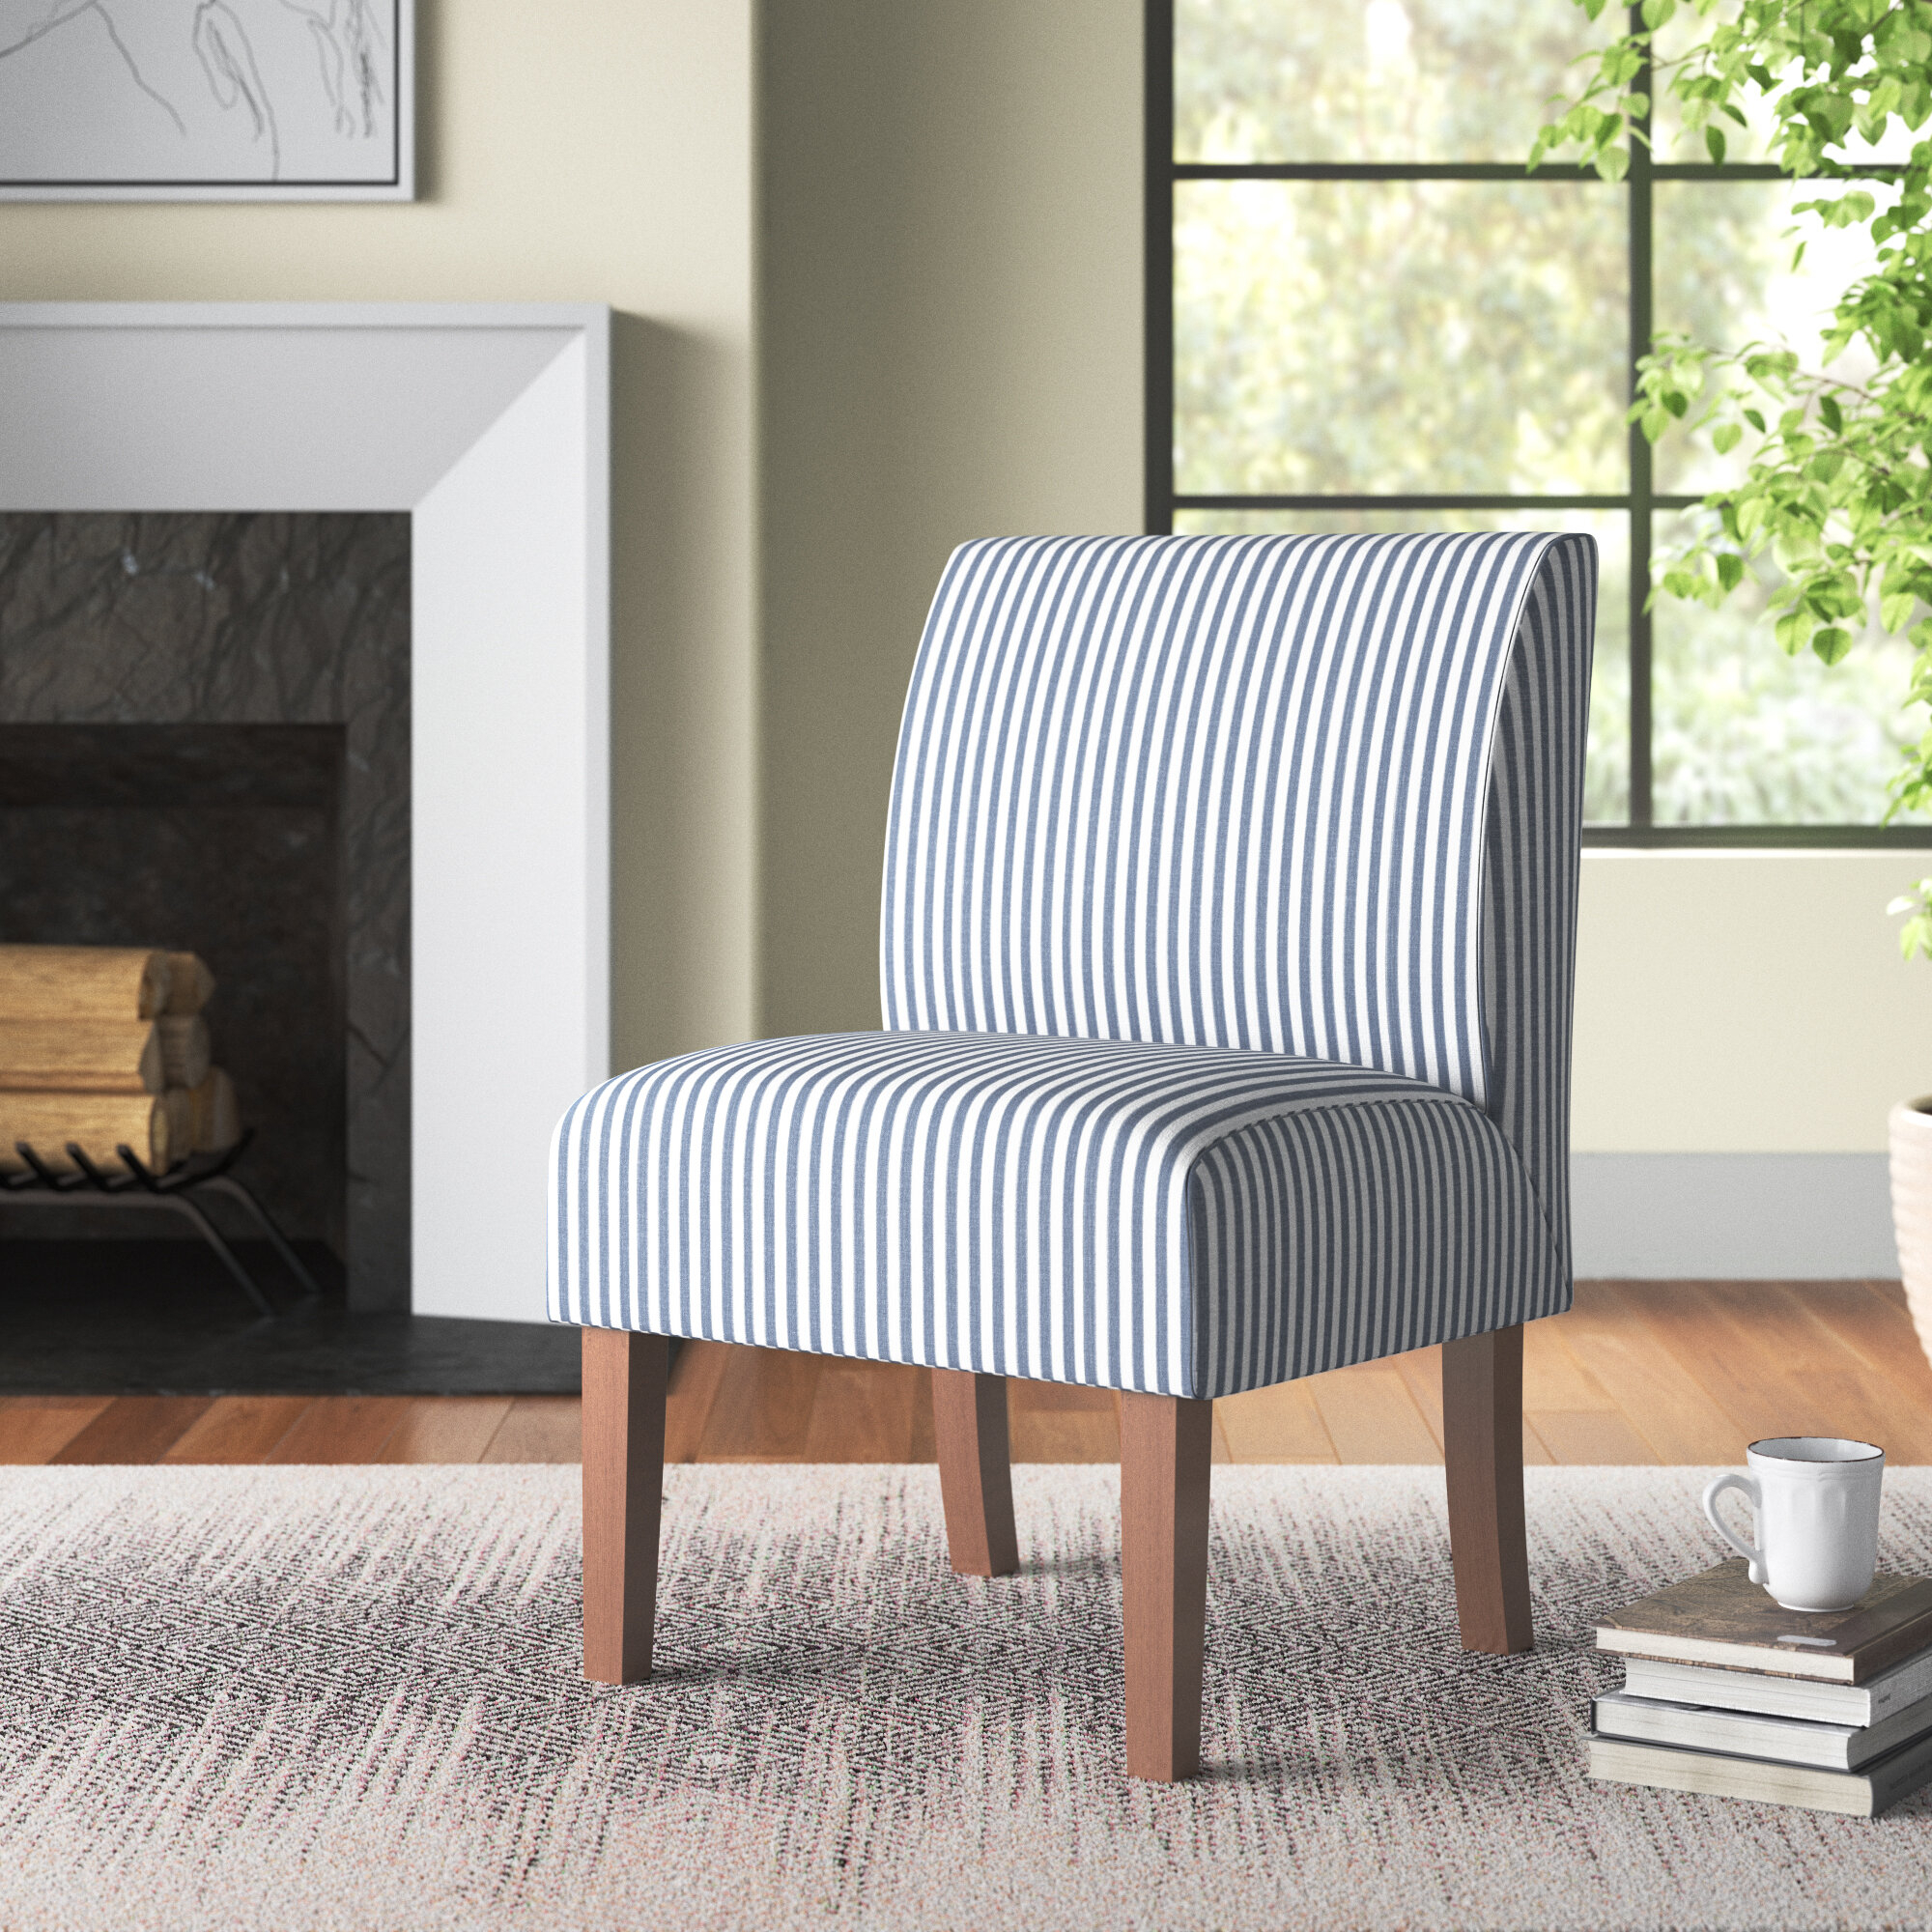 Blue Slipper Accent Chairs You'Ll Love In 2021 | Wayfair Inside Goodyear Slipper Chairs (View 4 of 15)